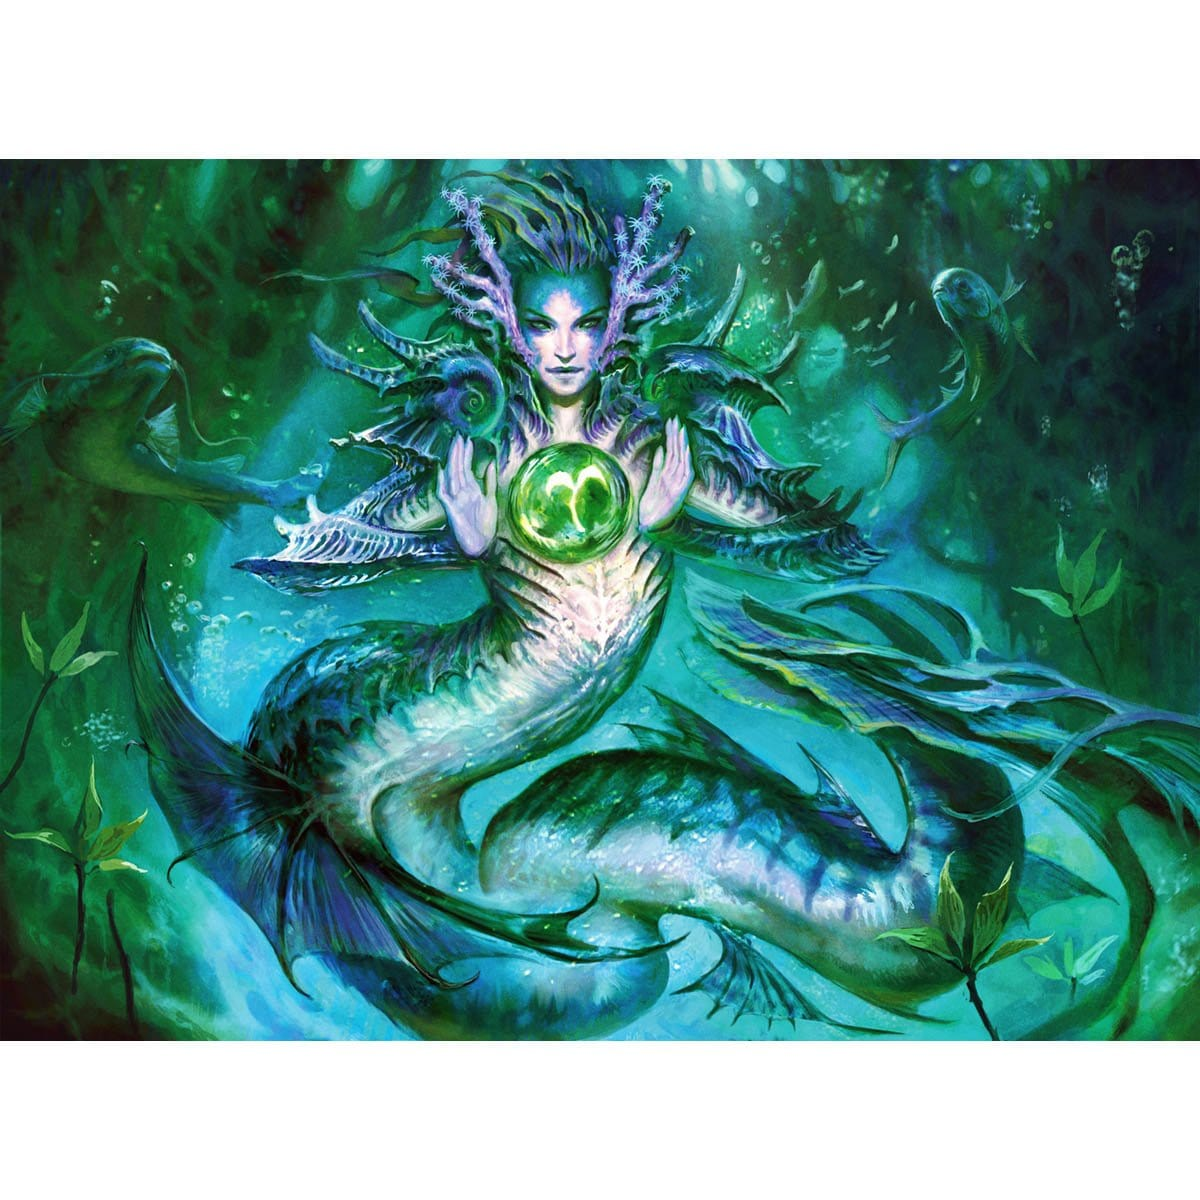 Tatyova, Benthic Druid Print - Print - Original Magic Art - Accessories for Magic the Gathering and other card games